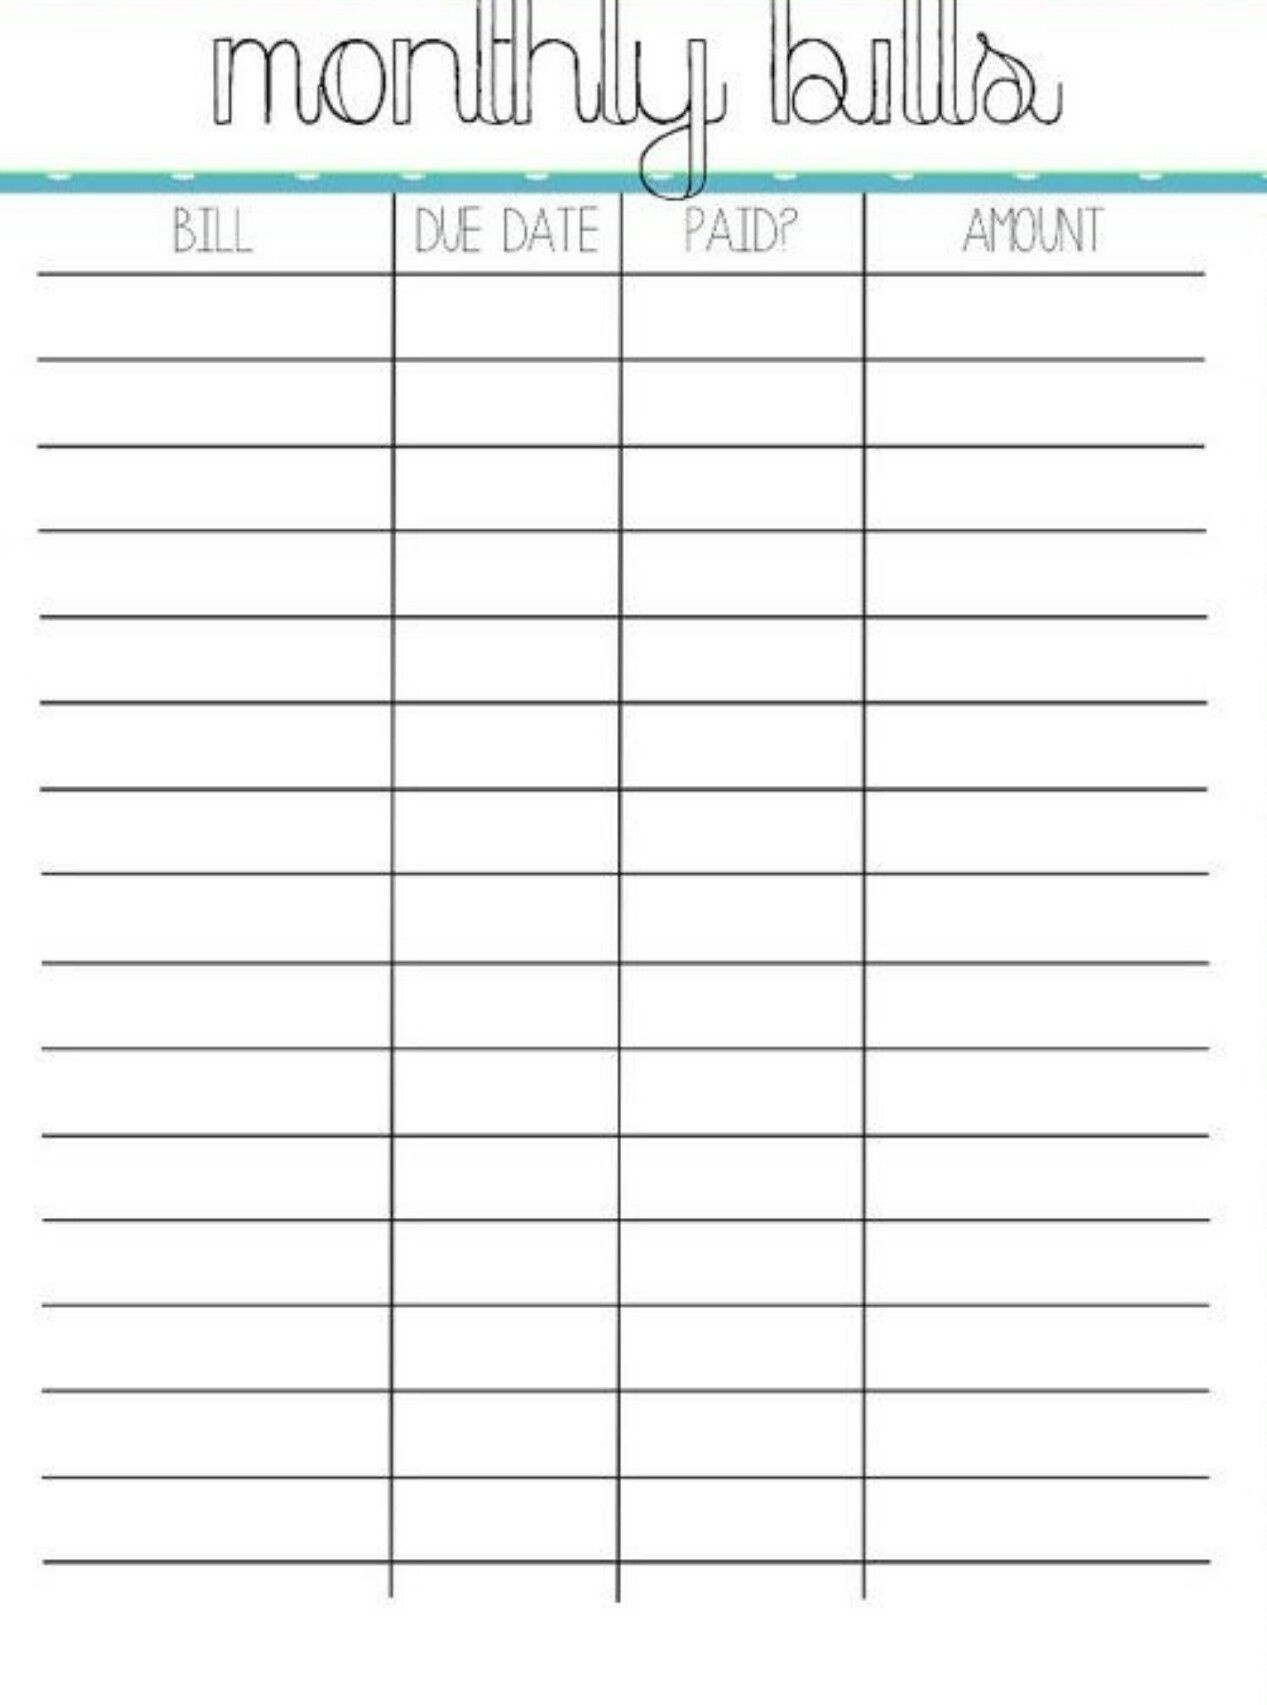 Free Printable Weekly Bill Organizer